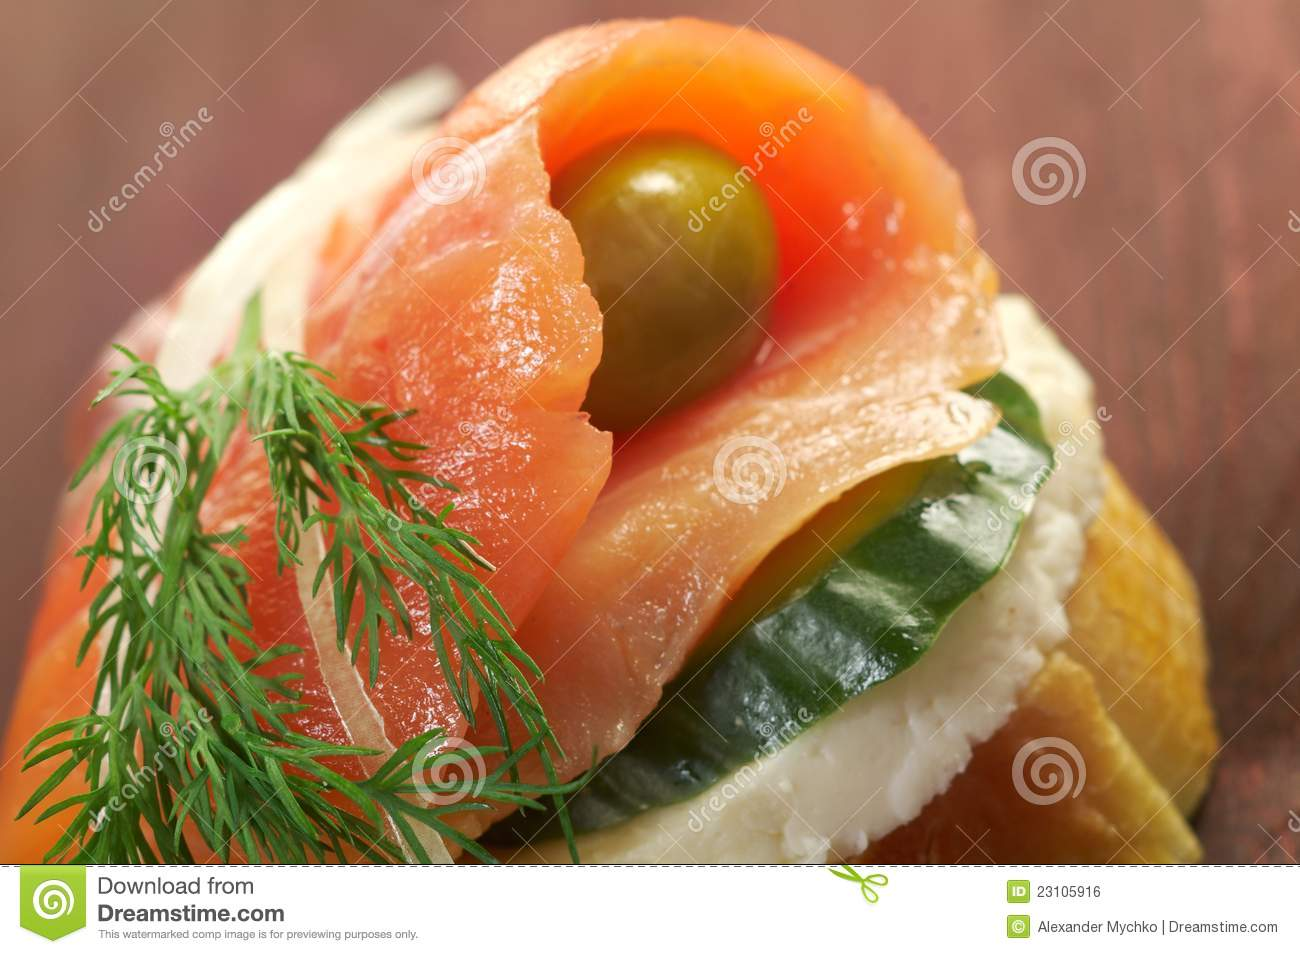 Canapes With Smoked Salmon Royalty Free Stock Image - Image: 23105916